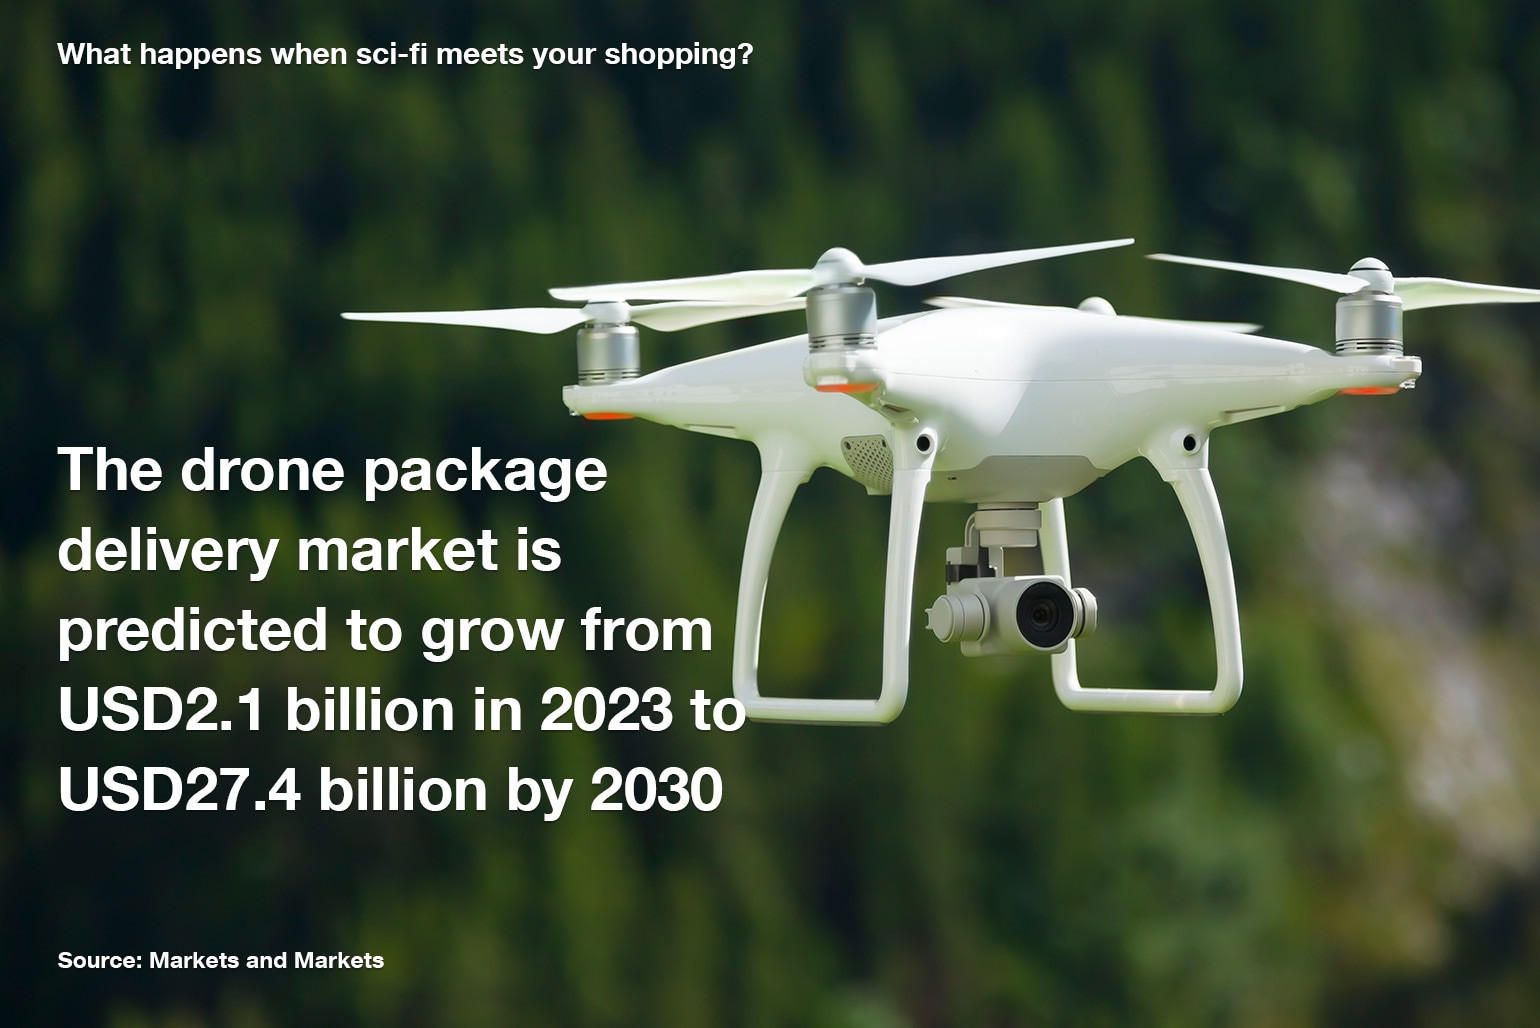 Infographic showing how drone delivery market is predicted to grow